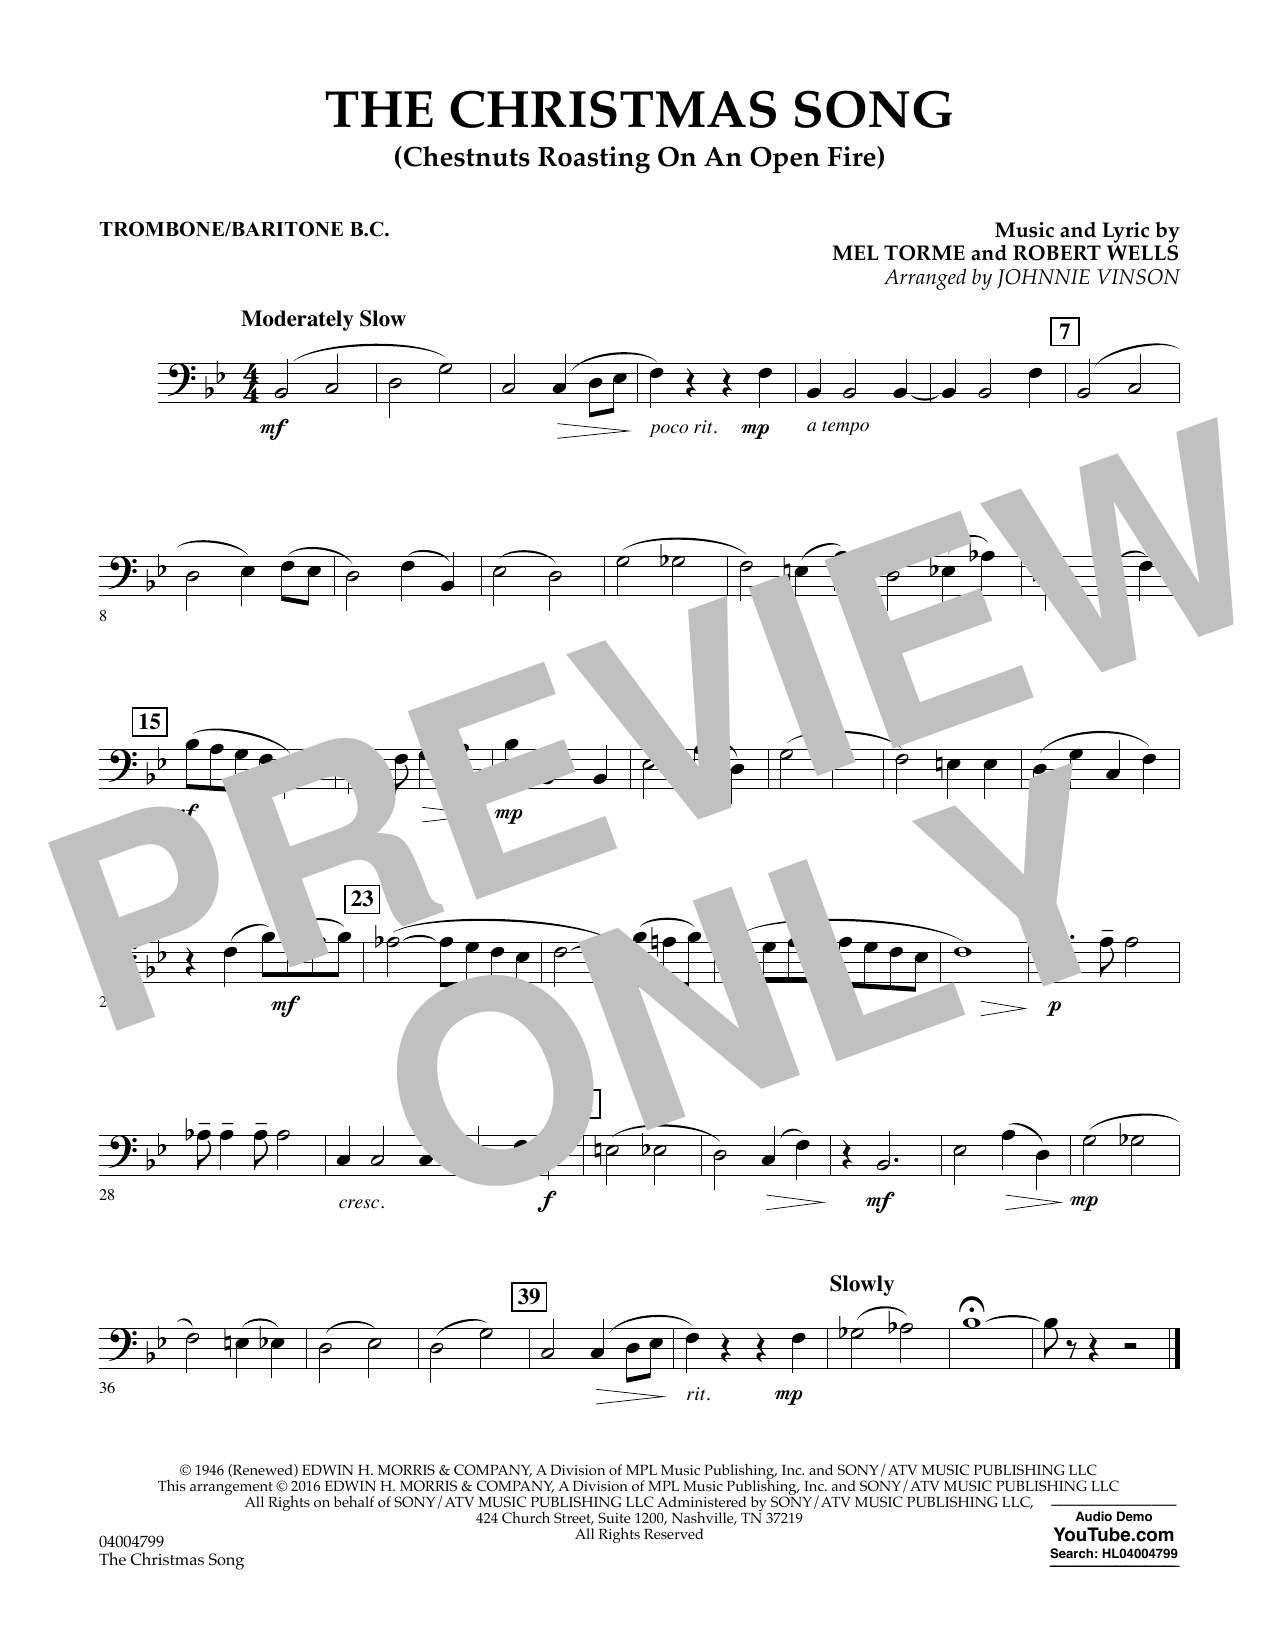 The Christmas Song (Chestnuts Roasting on an Open Fire) - Trombone/Baritone B.C. (Concert Band)